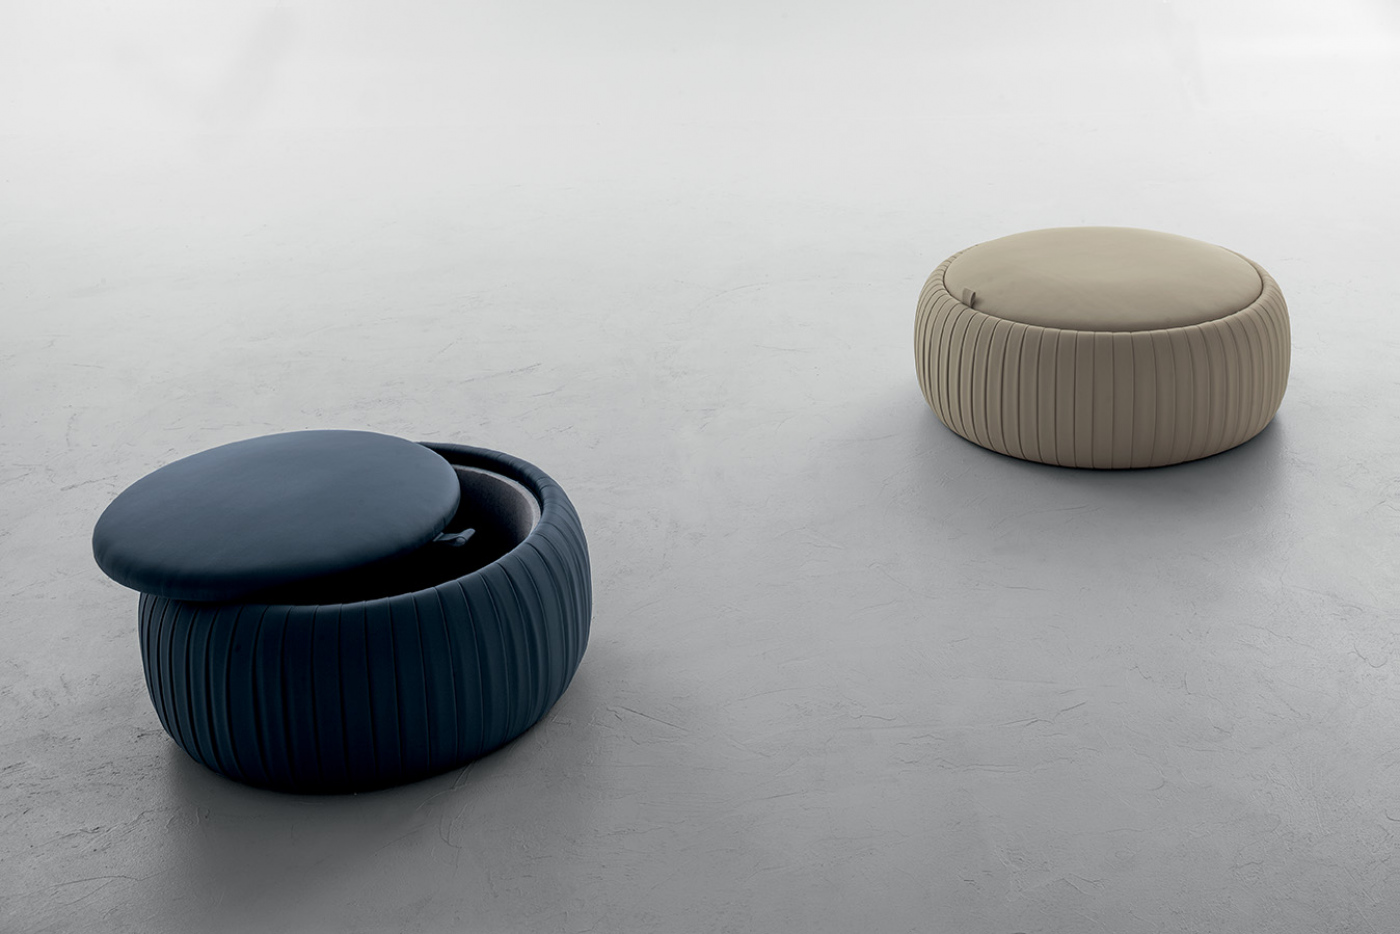 new style 7f34d 7738e Pouf / coffee table/ storage space Plissé - Tonin Casa